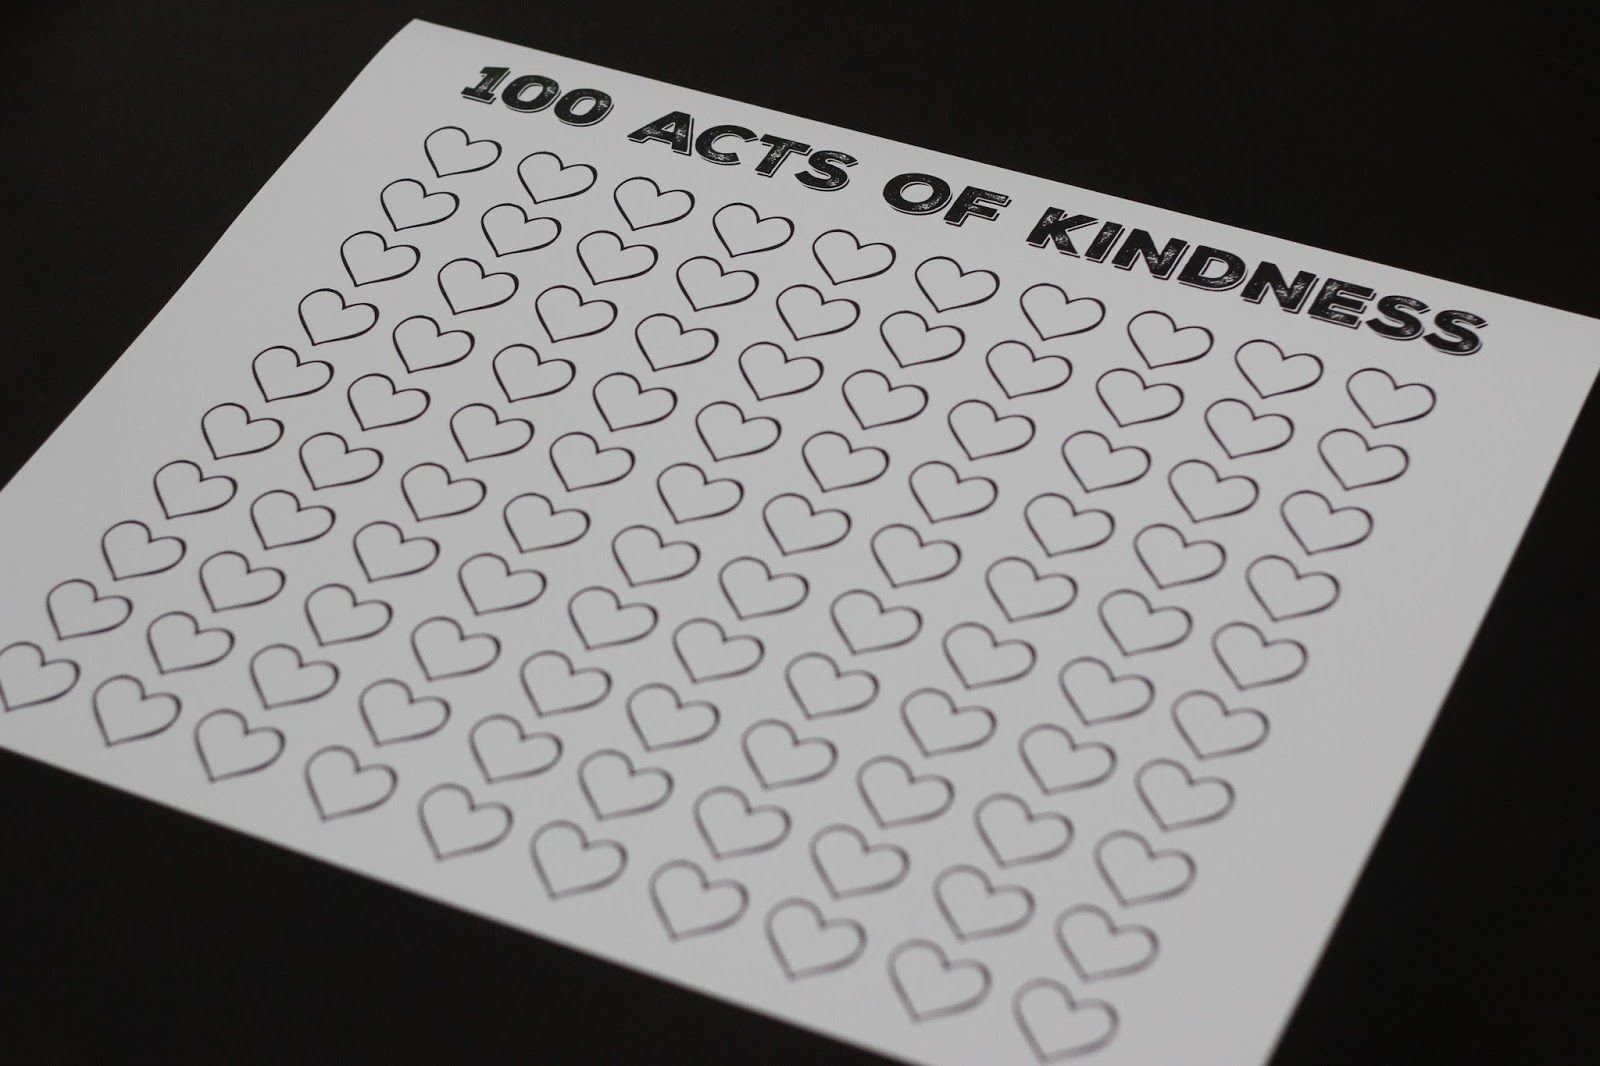 Toddler Approved 100 Acts Of Kindness Free Printable